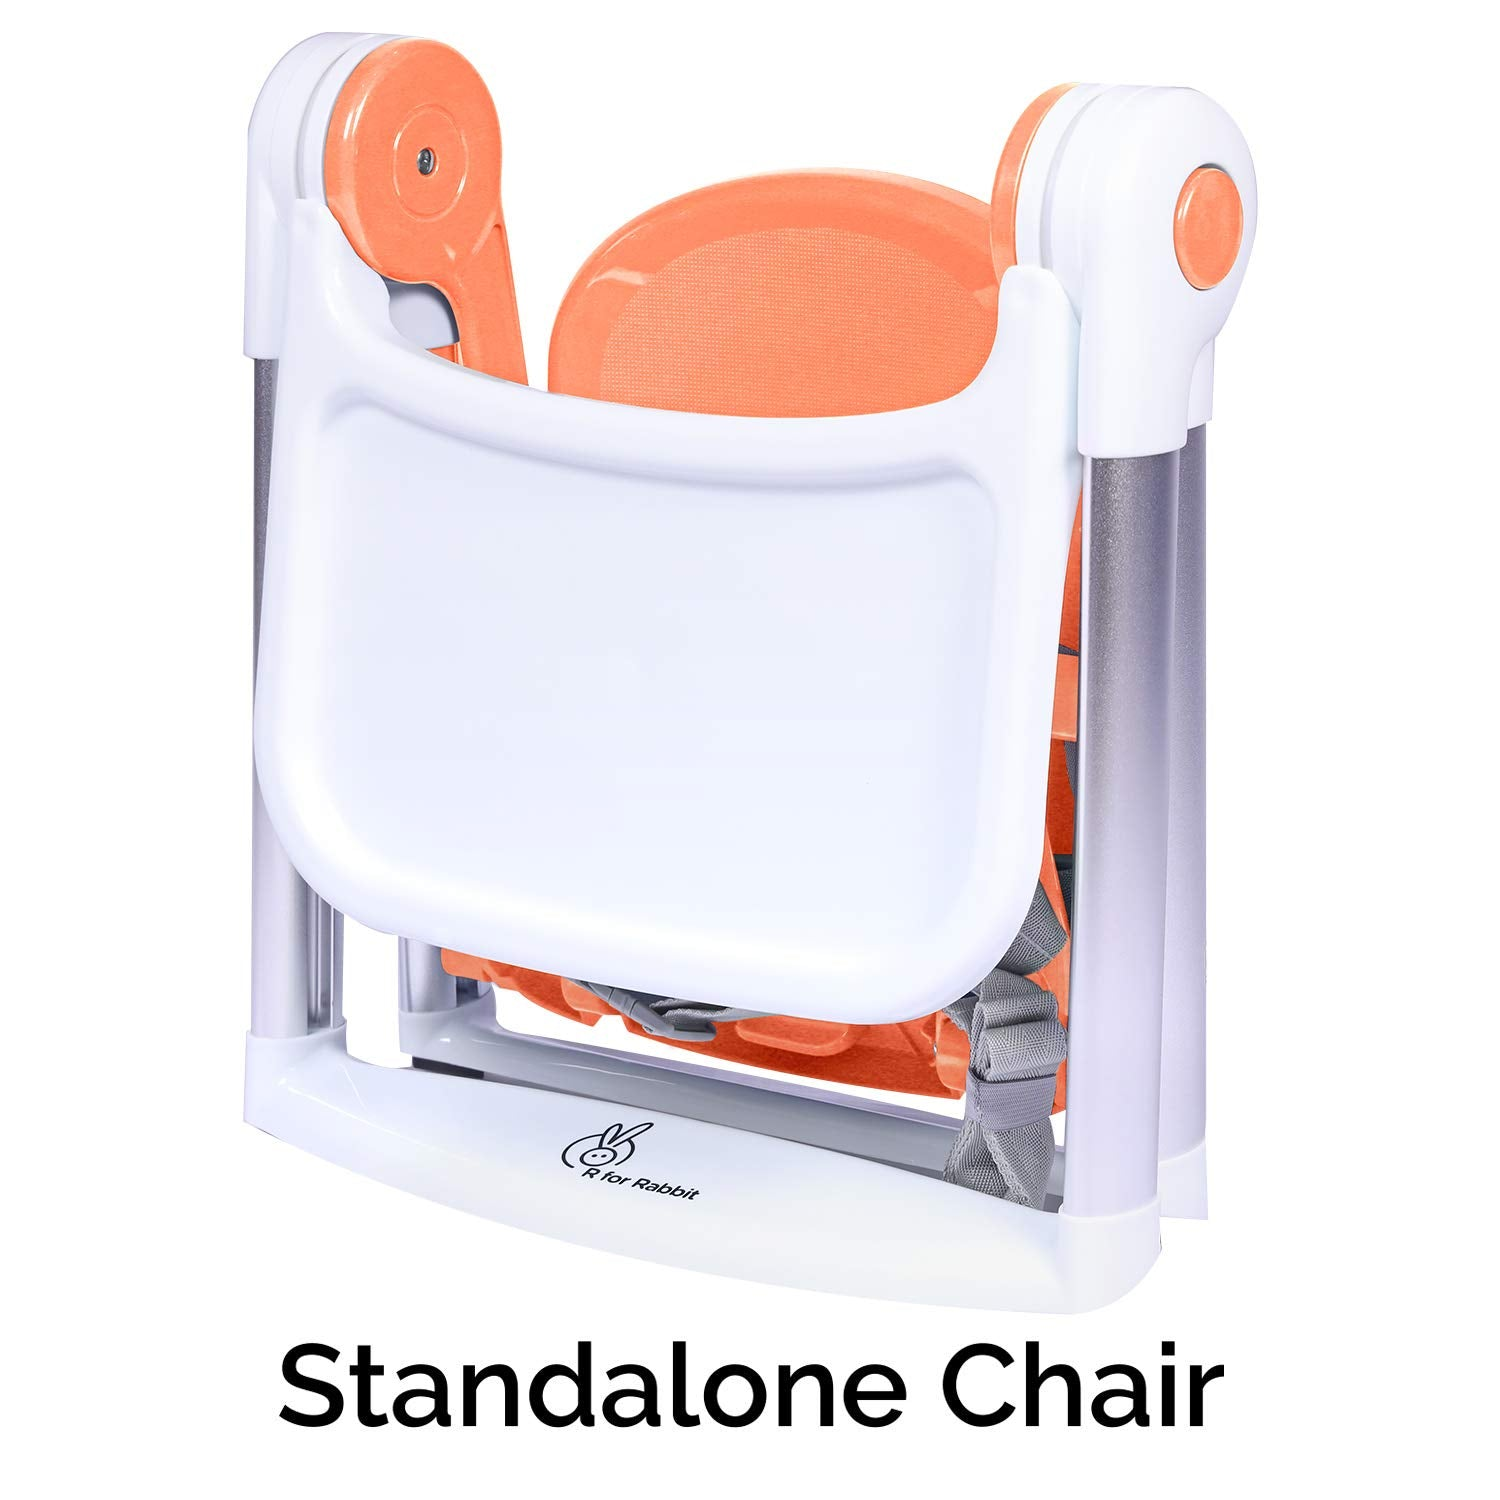 R for Rabbit Jelly Bean Booster High Chair|Seat for Baby's Dinner or Feeding Time